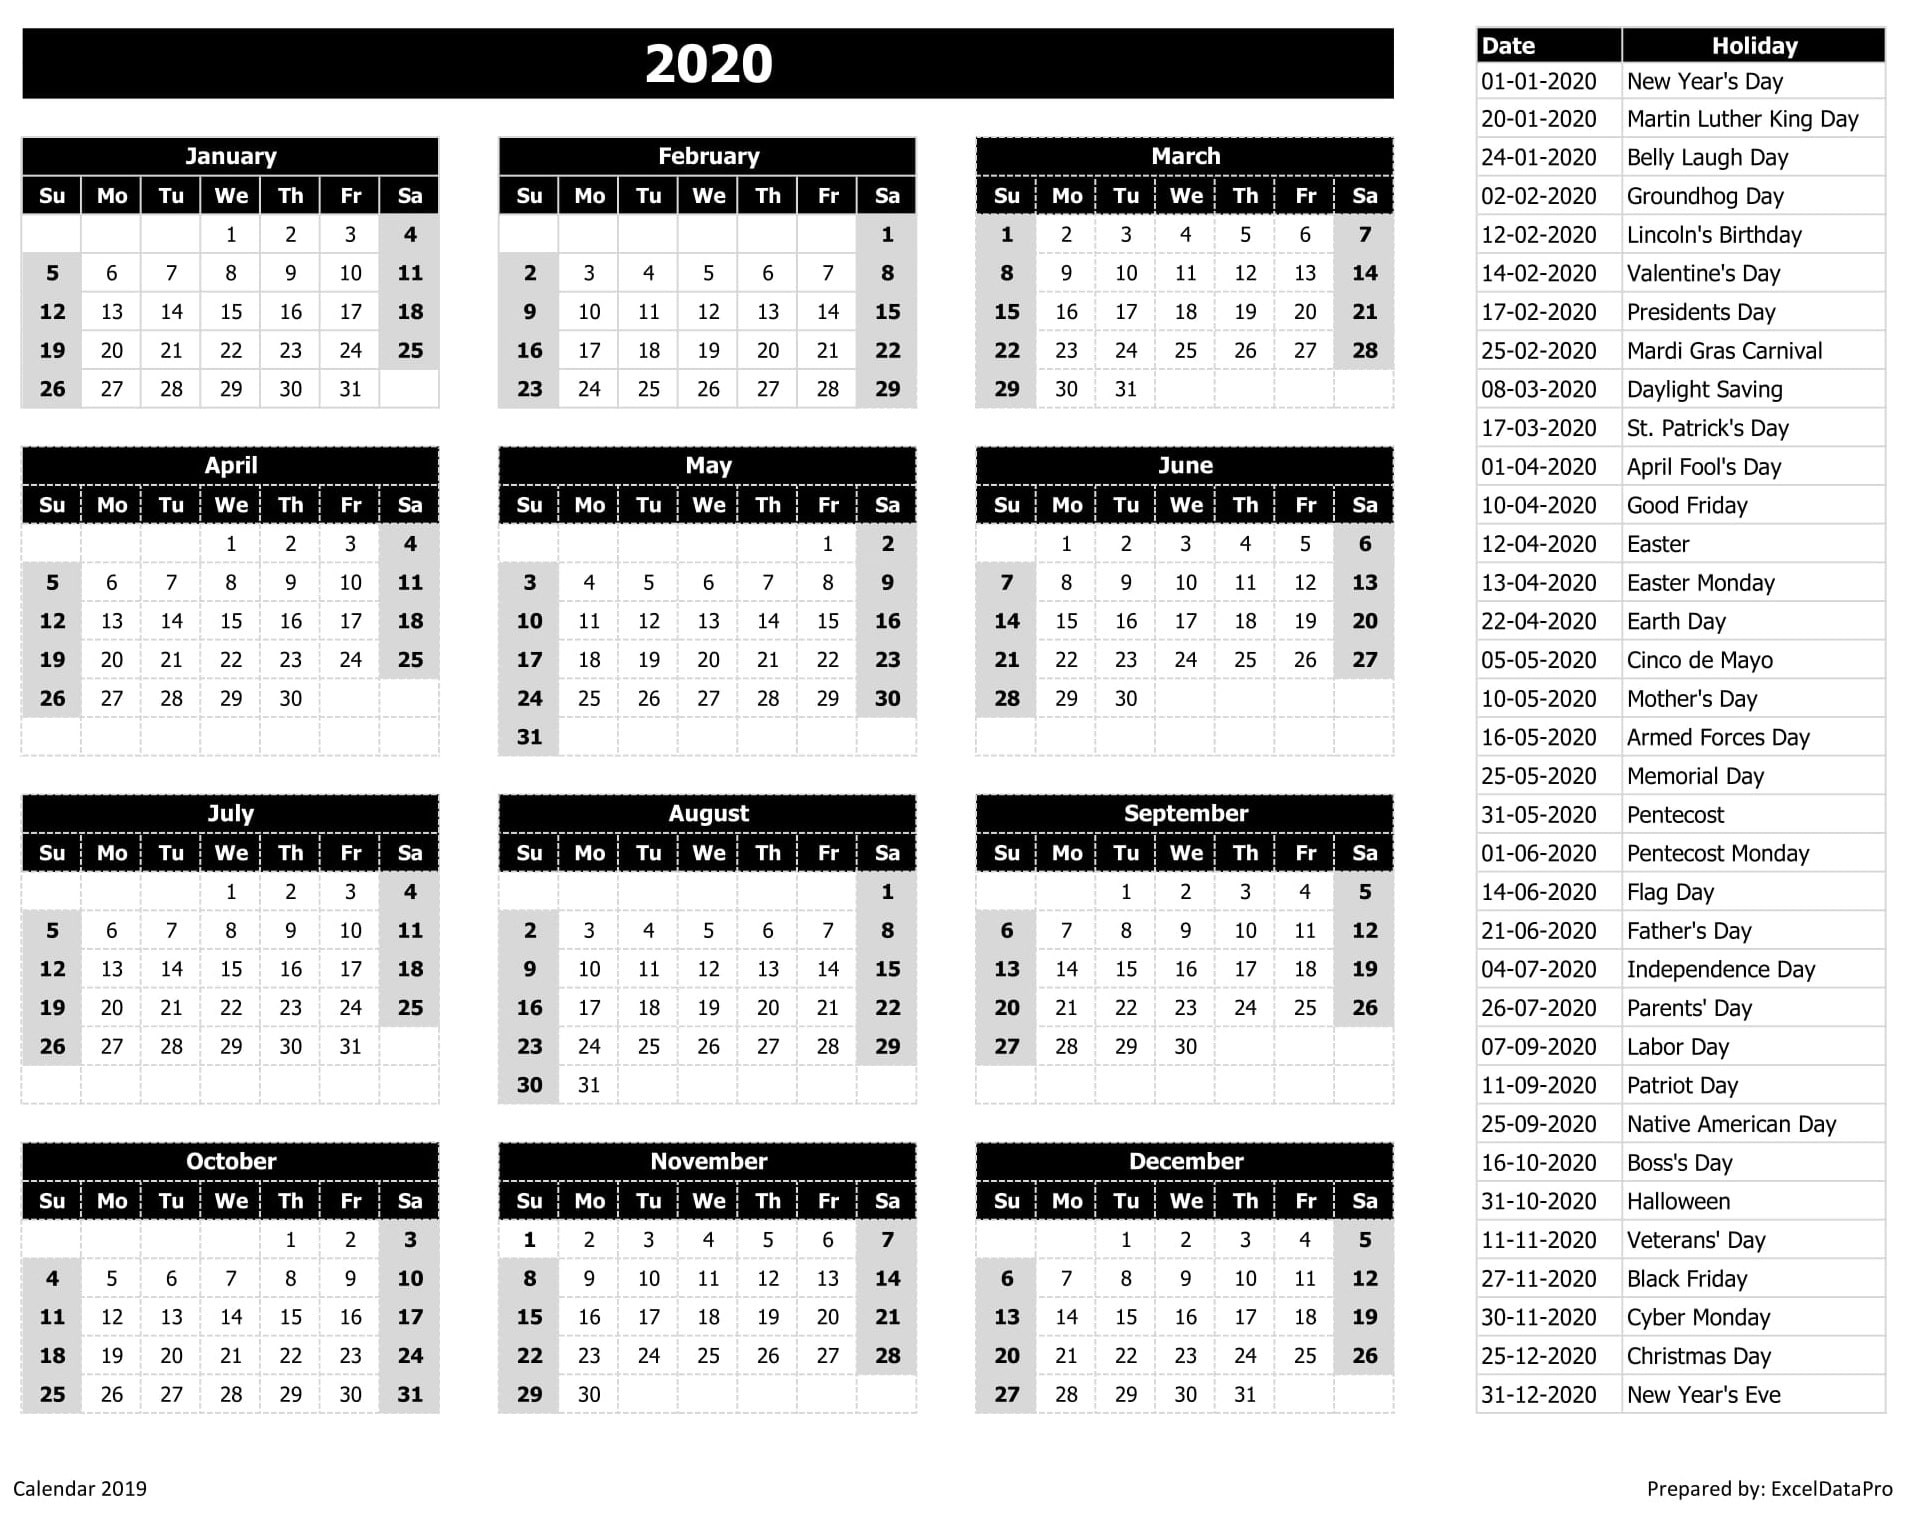 2020 Calendar Excel Templates, Printable Pdfs & Images-2020 Calendar With Holidays Listed